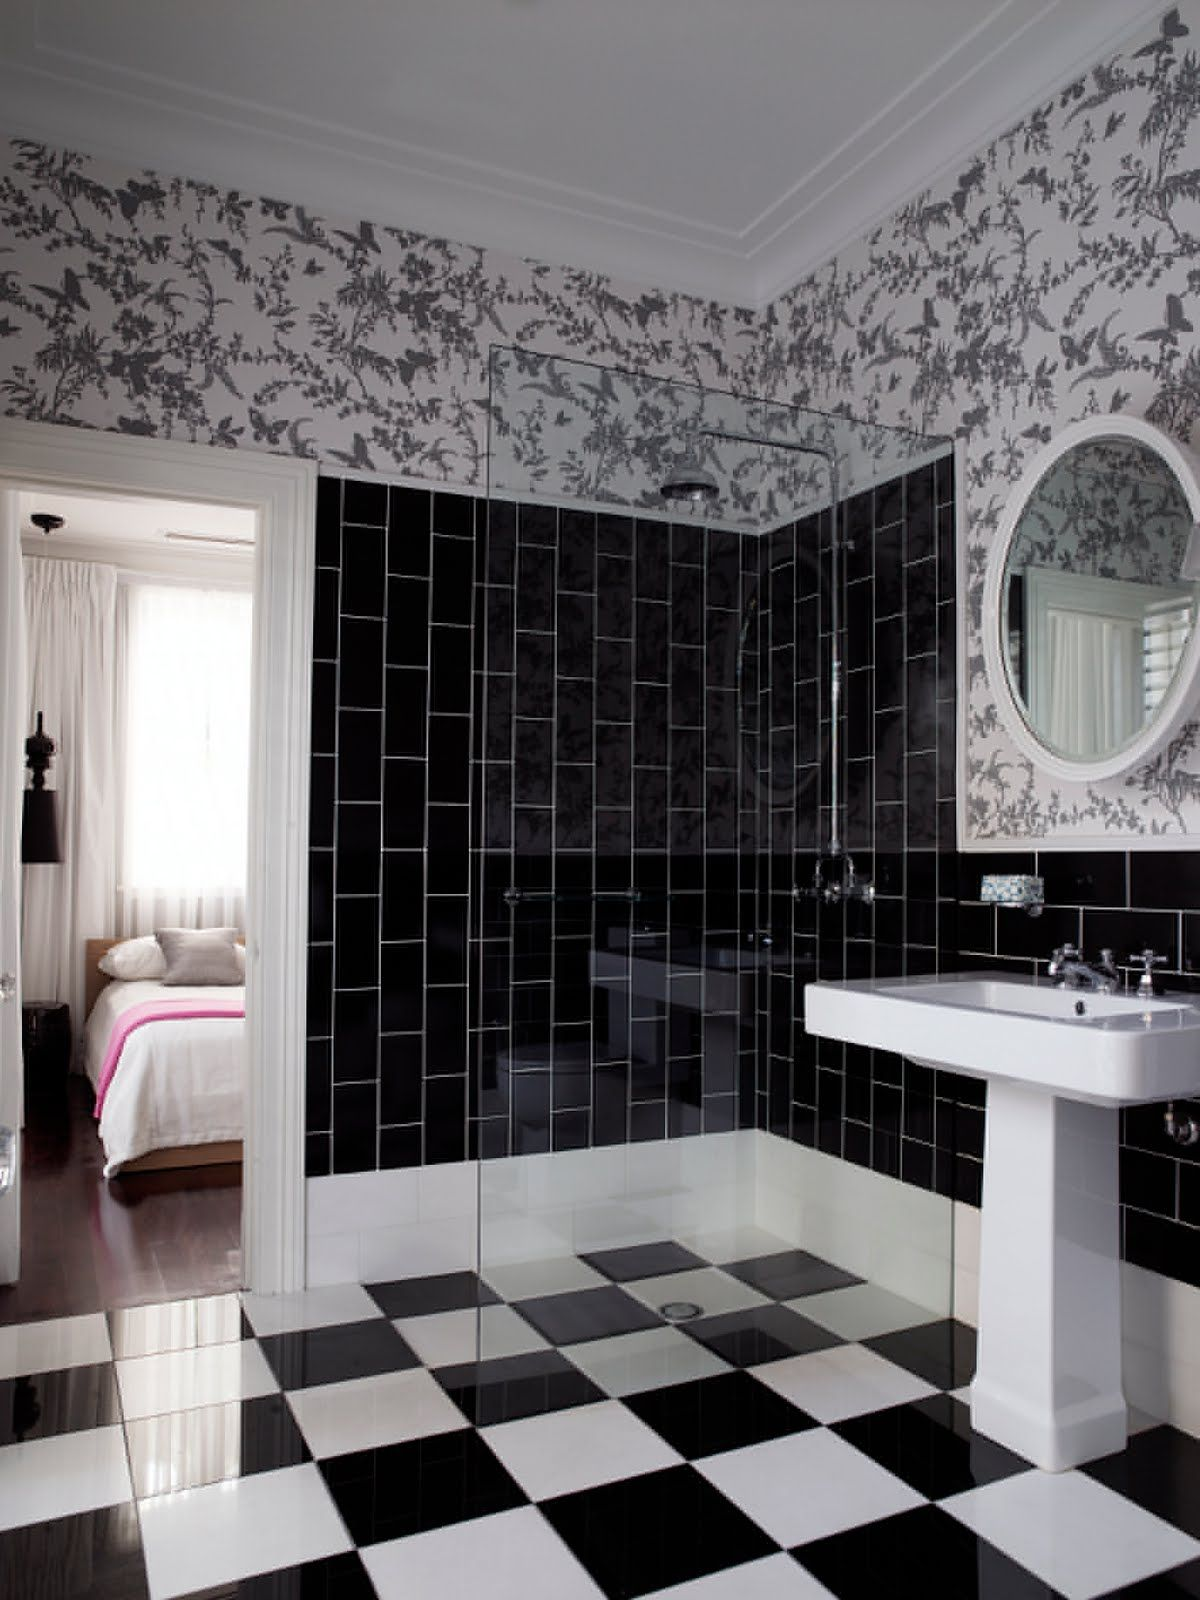 Bathroom Tiles Black And White. New Black Subway Tile Home Design Ideas  Pictures Remodel And